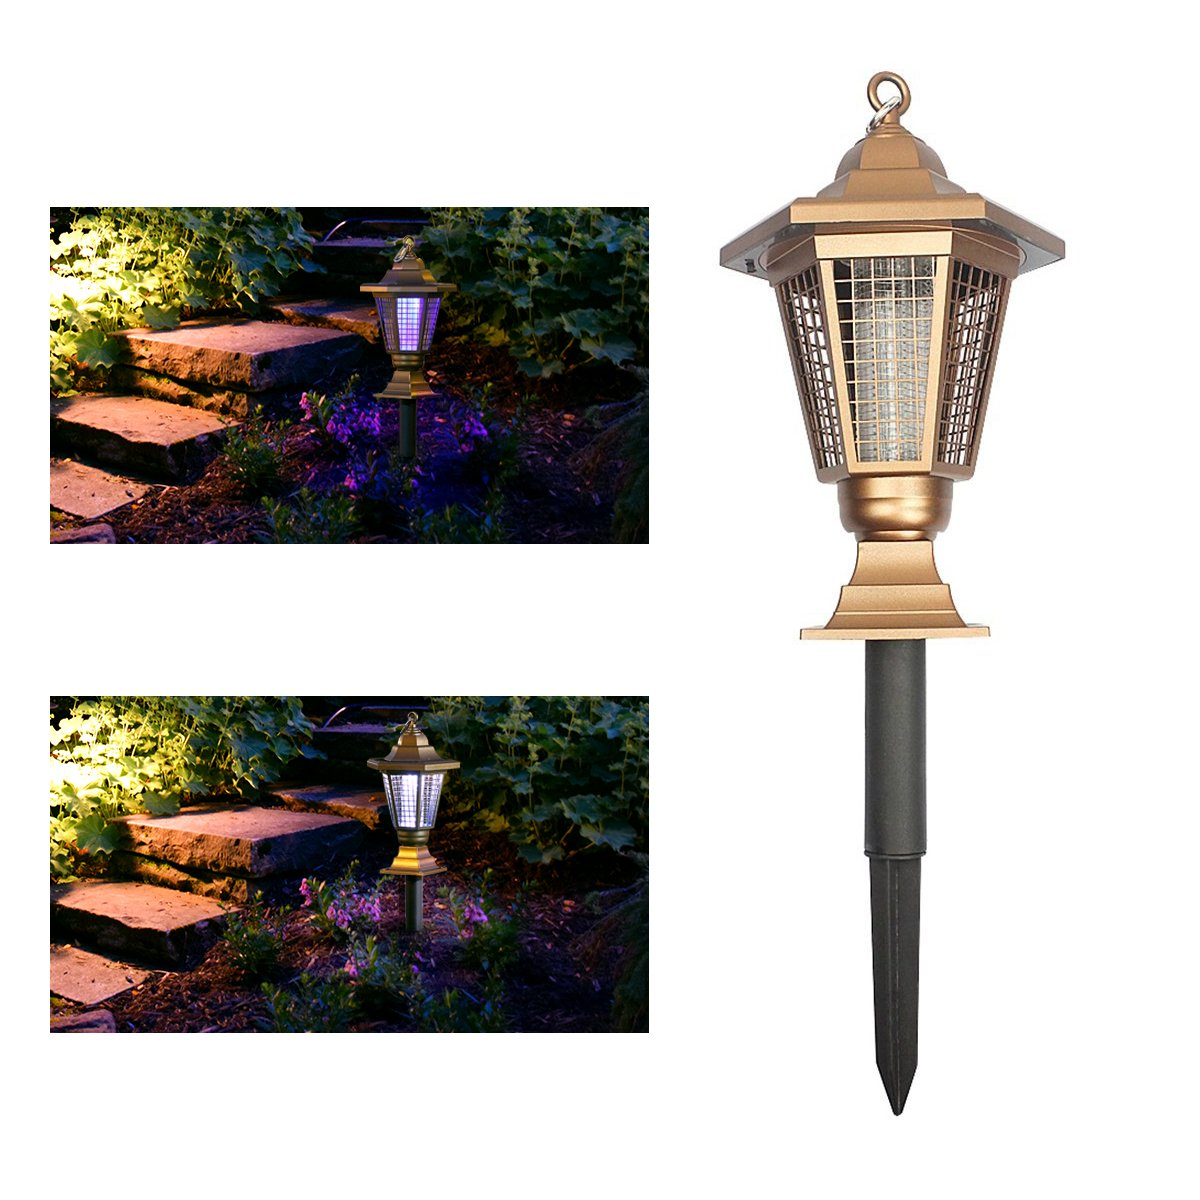 Solar Bug Zapper, Wrcibo Electronic Insect Killer Outdoor Solar Mosquito Zapper Light Fly Trap and Decorative Garden Light